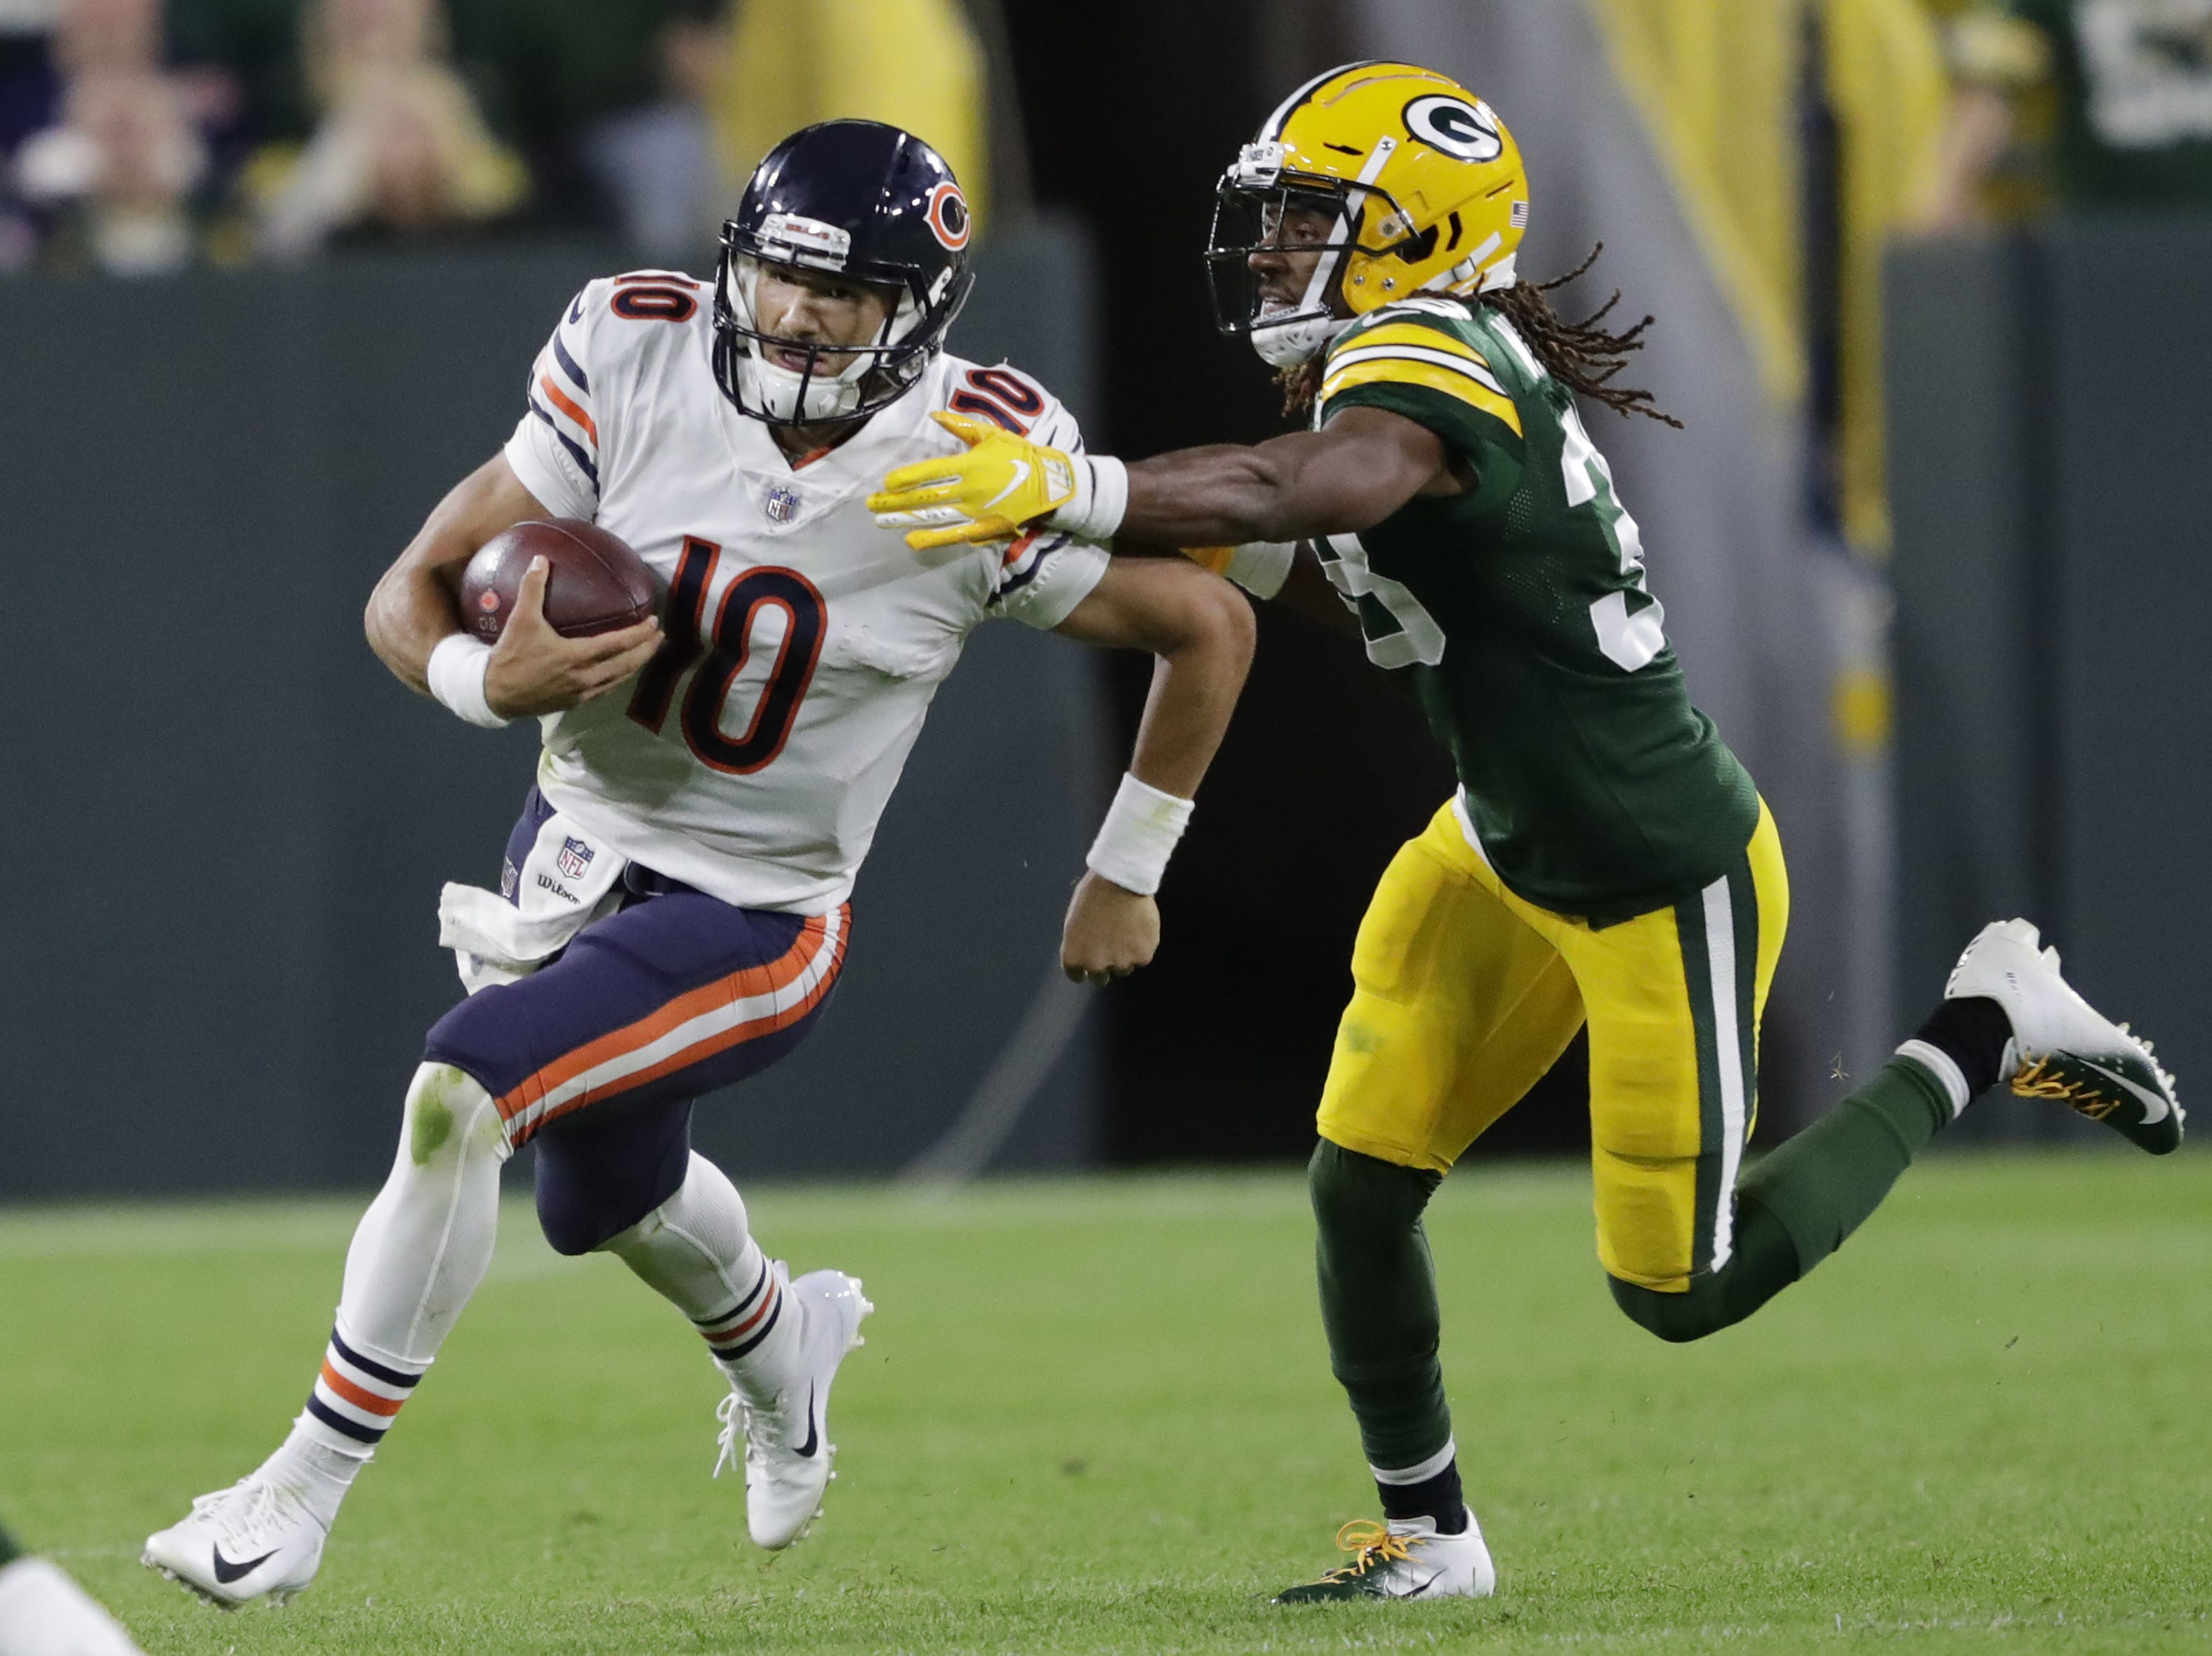 Chicago Bears quarterback Mitchell Trubisky runs for yardage against Green Bay Packers defensive back Tramon Williams (38) in the fourth quarter Sunday, Sept. 9, 2018, at Lambeau Field in Green Bay, Wis.